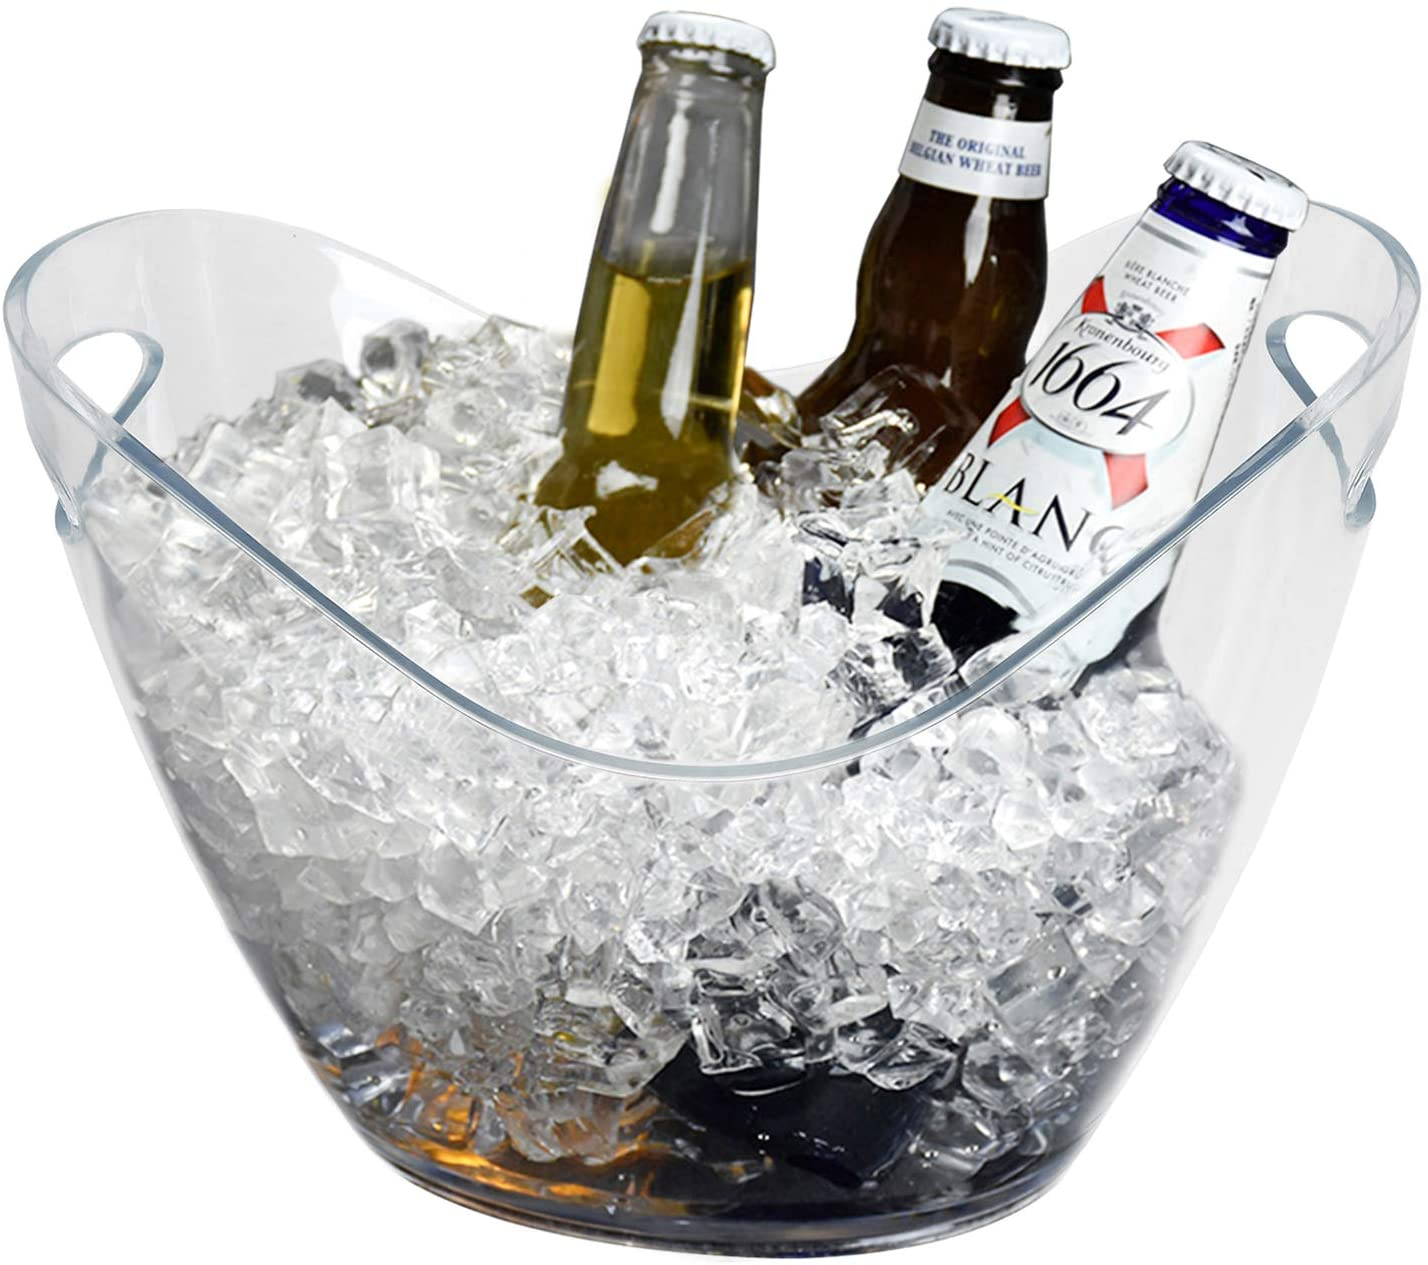 Yesland Ice Bucket Clear Plastic 3.5 Liter - Storage Tub - Perfect for Wine, Champagne or Beer Bottles